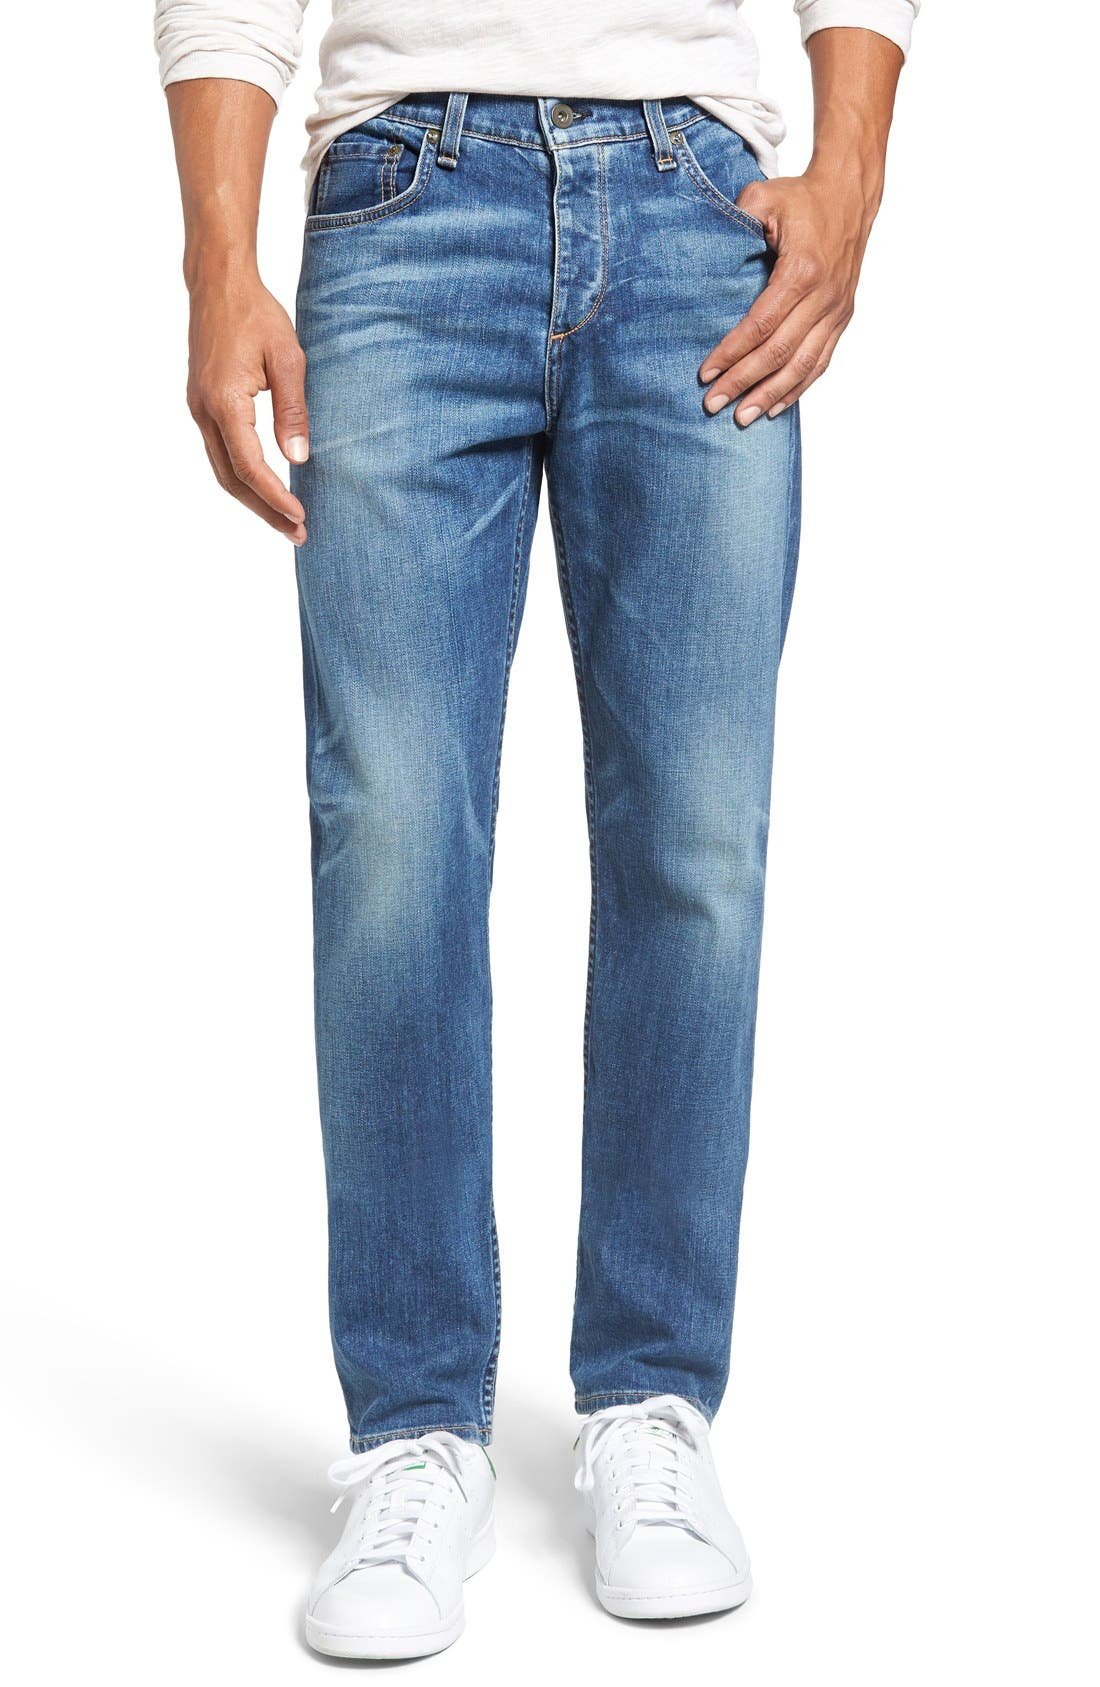 Main Image - rag & bone Standard Issue Fit 3 Slim Straight Leg Jeans (Bainbridge)